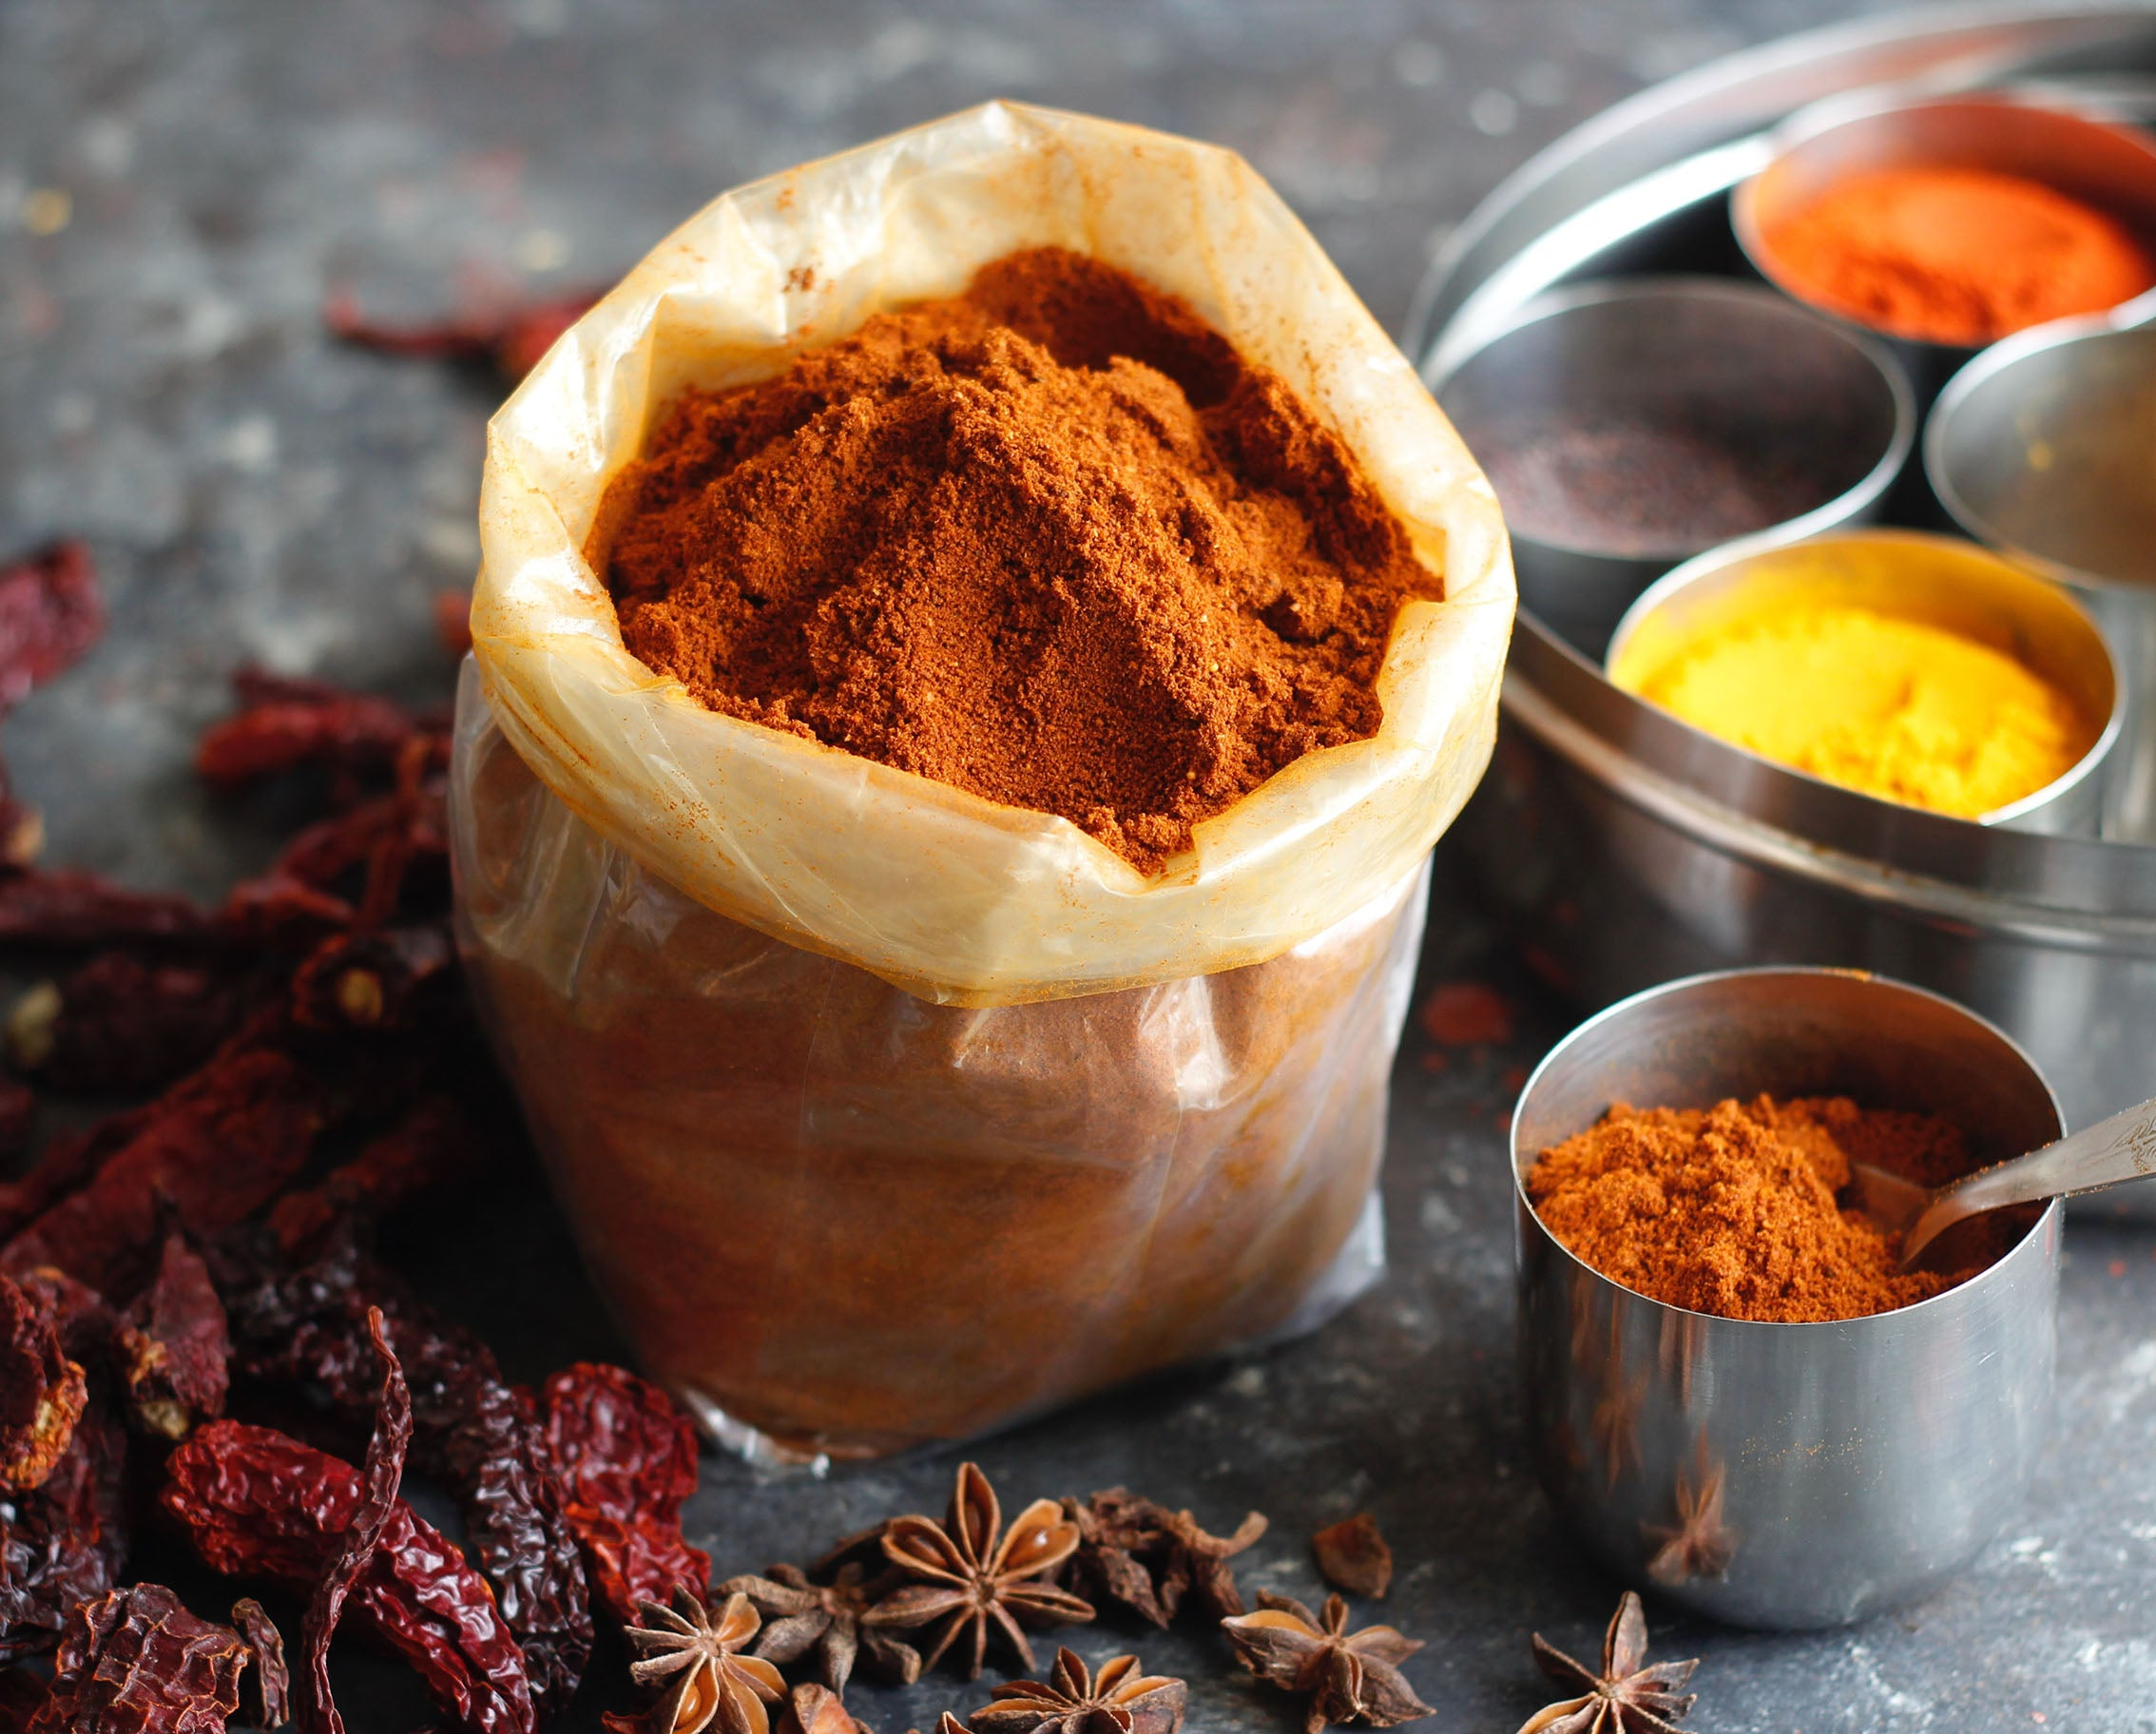 Mustard powder and other spices